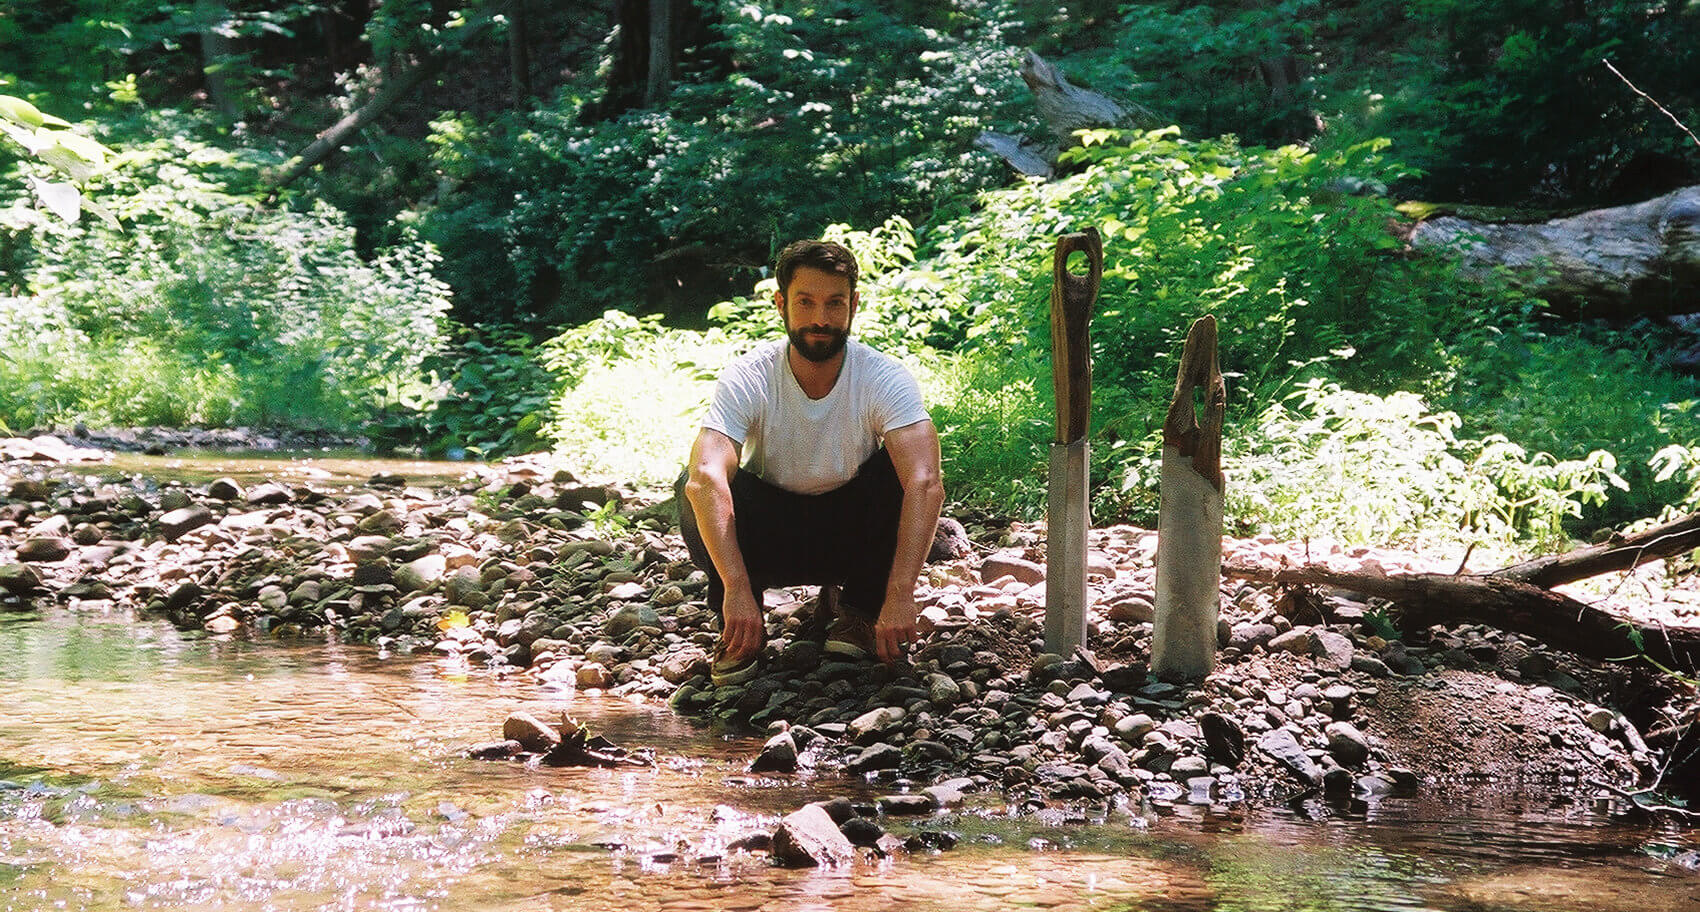 Brad Teasdale crouching on a riverbank with two concrete-and-wood art objects